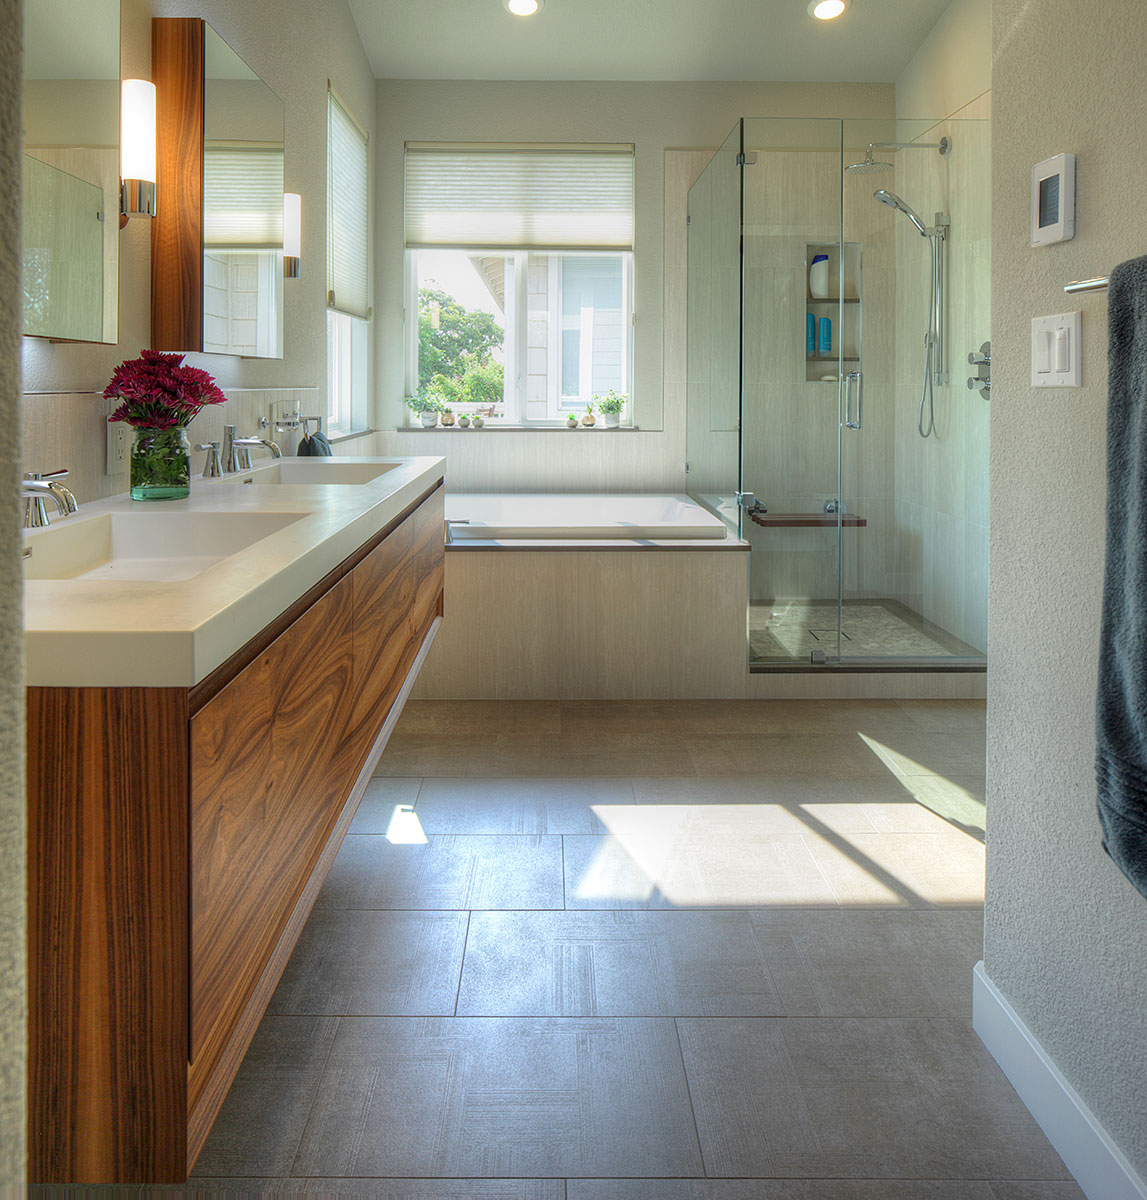 Upscale Bathroom Remodeling Trends East Bay California - Alameda - Simplicity and Zen - Custom Kitchens by John Wilkins